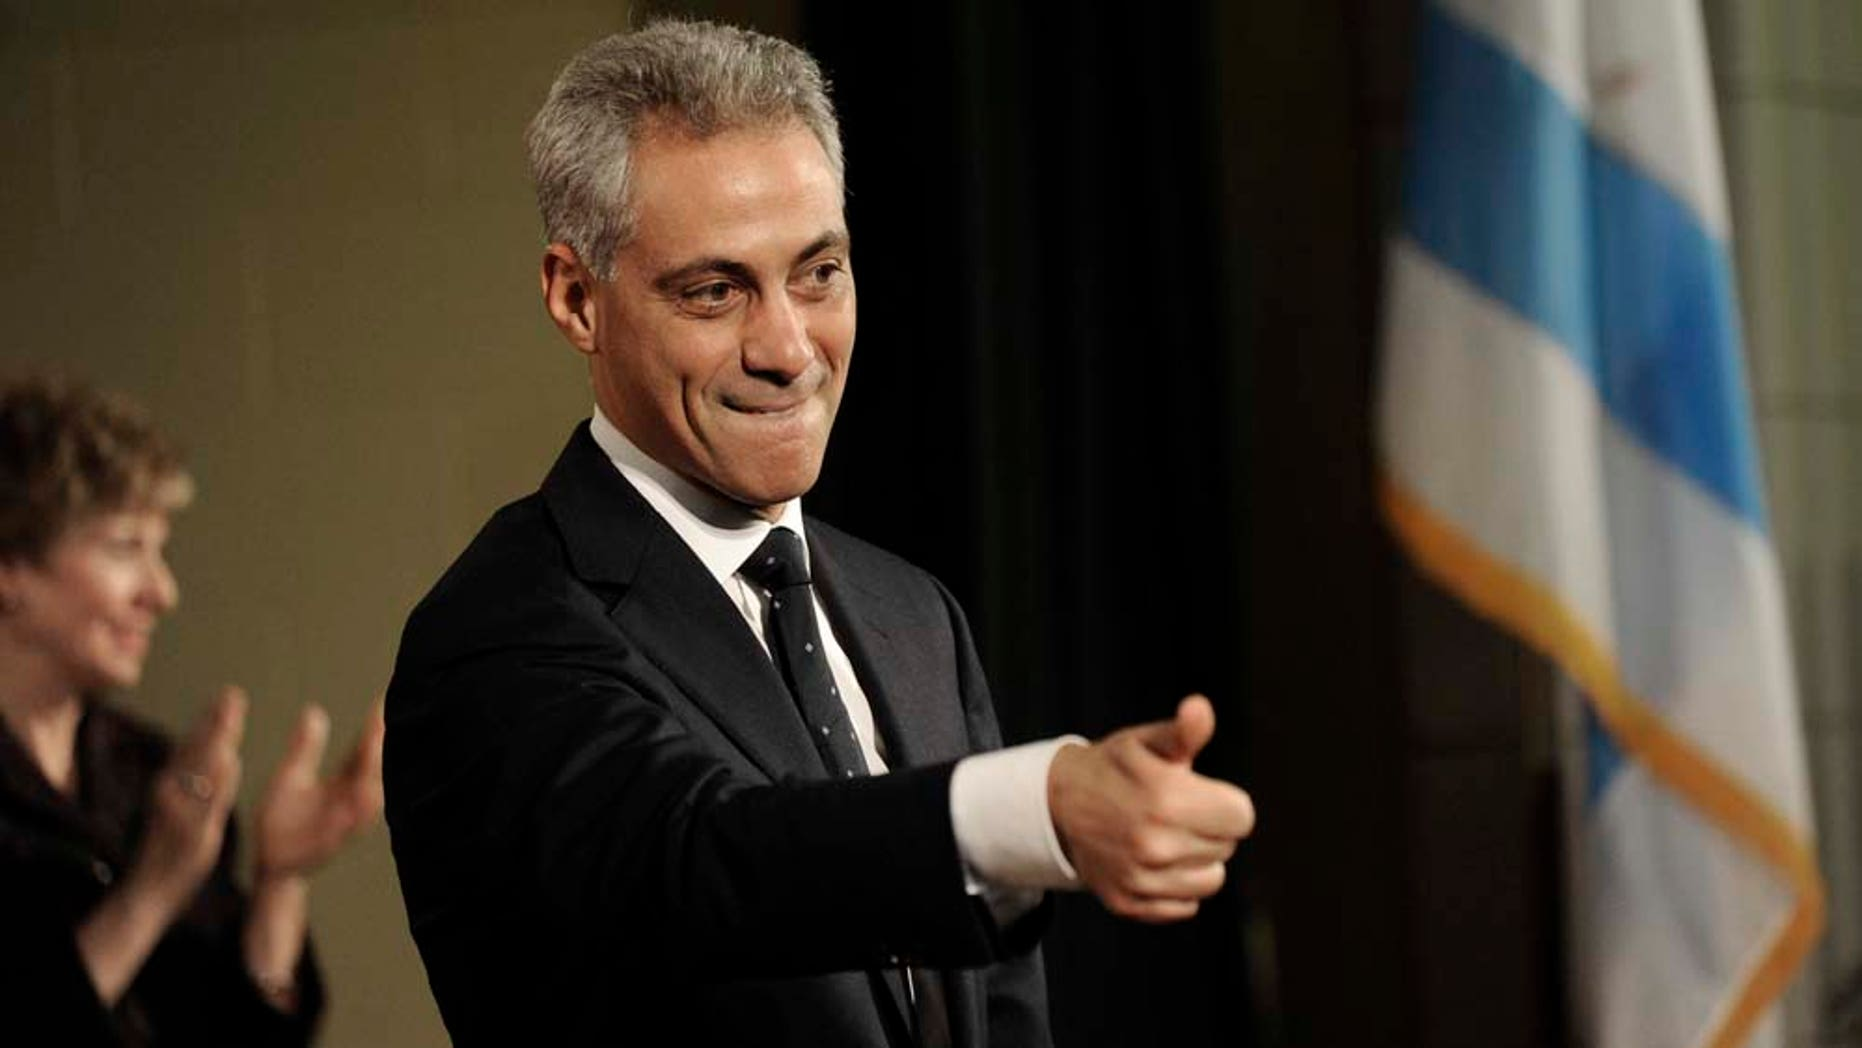 Chicago mayor pushes plan requiring all gun sales to be videotaped